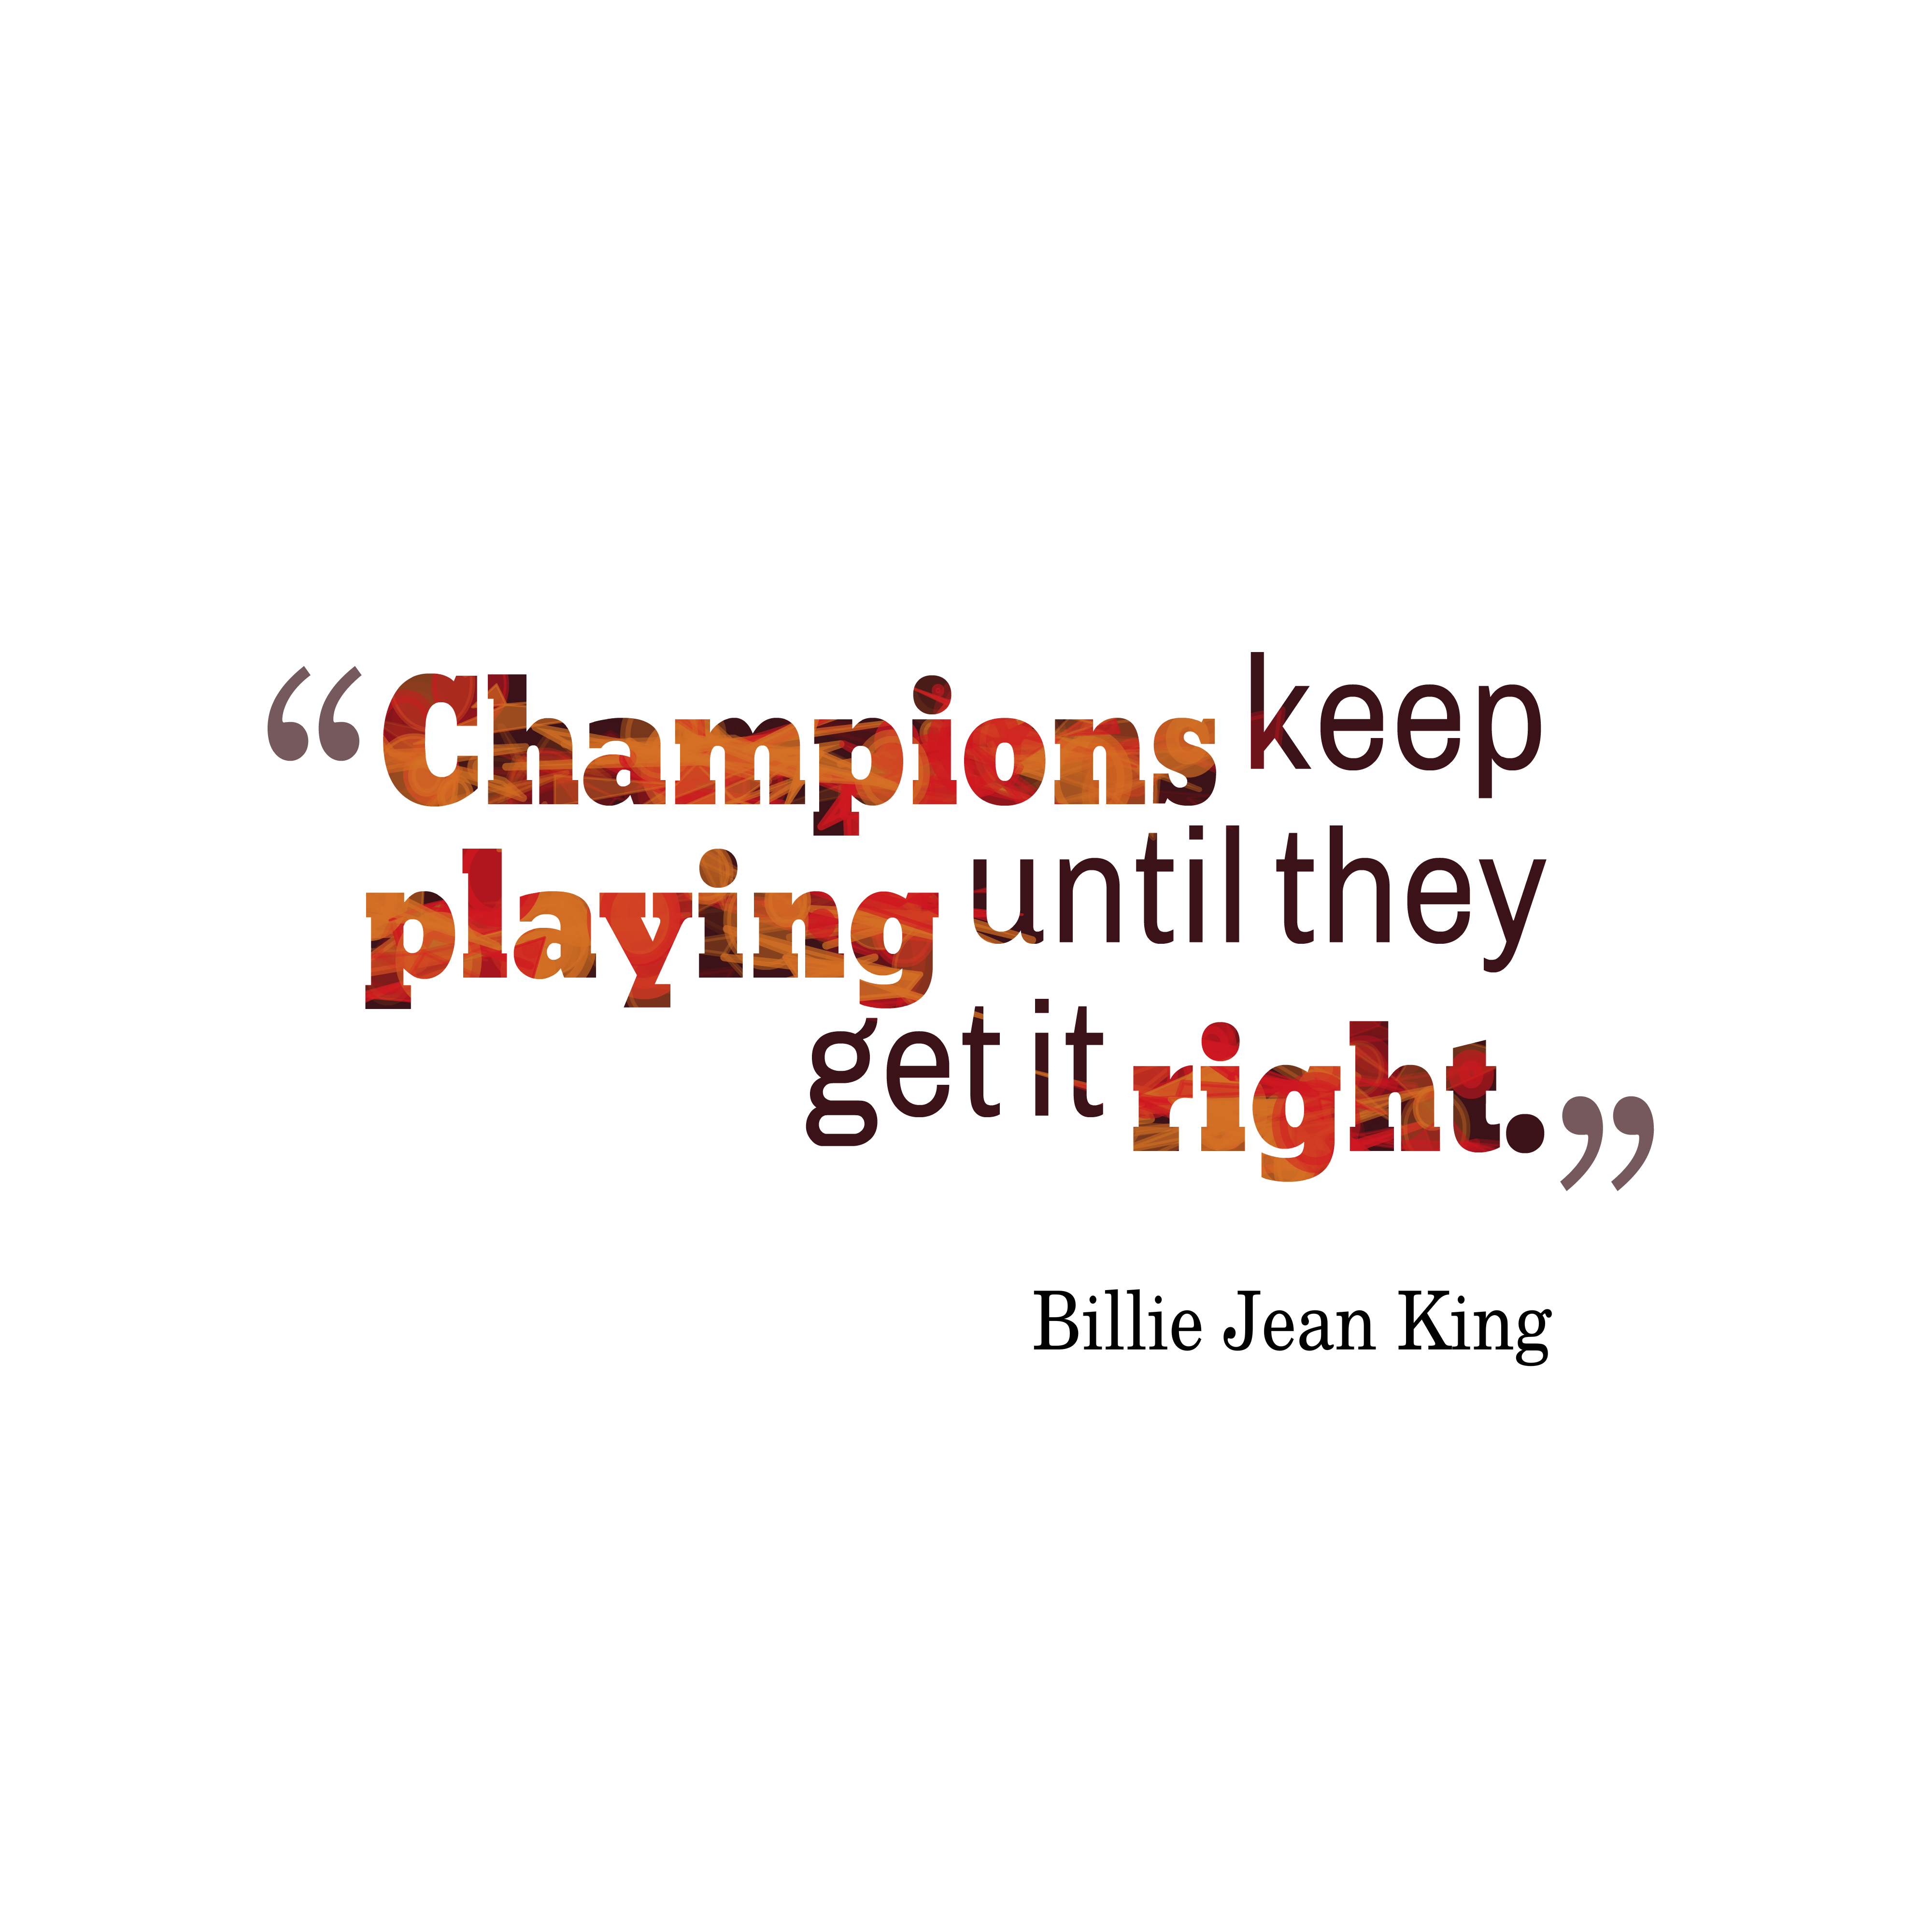 Inspirational Sports Quotes 35 Inspirational Sports Quotes For Motivation